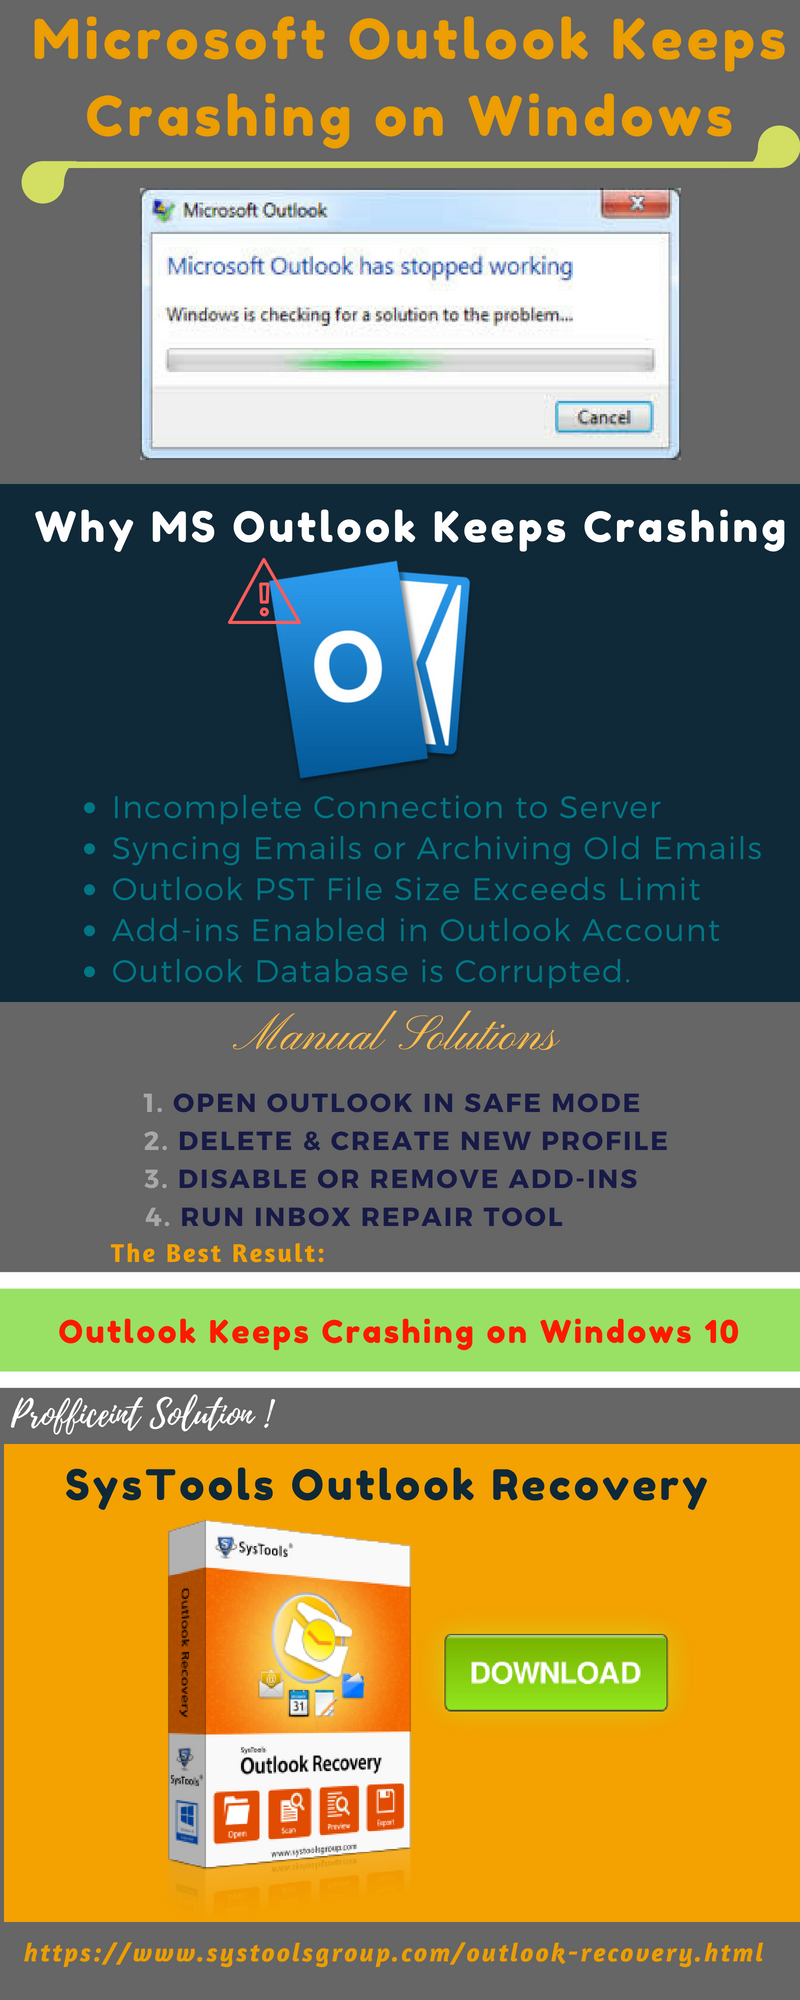 SysTools Outlook Recovery | Repair Corrupted Outlook PST Data Files